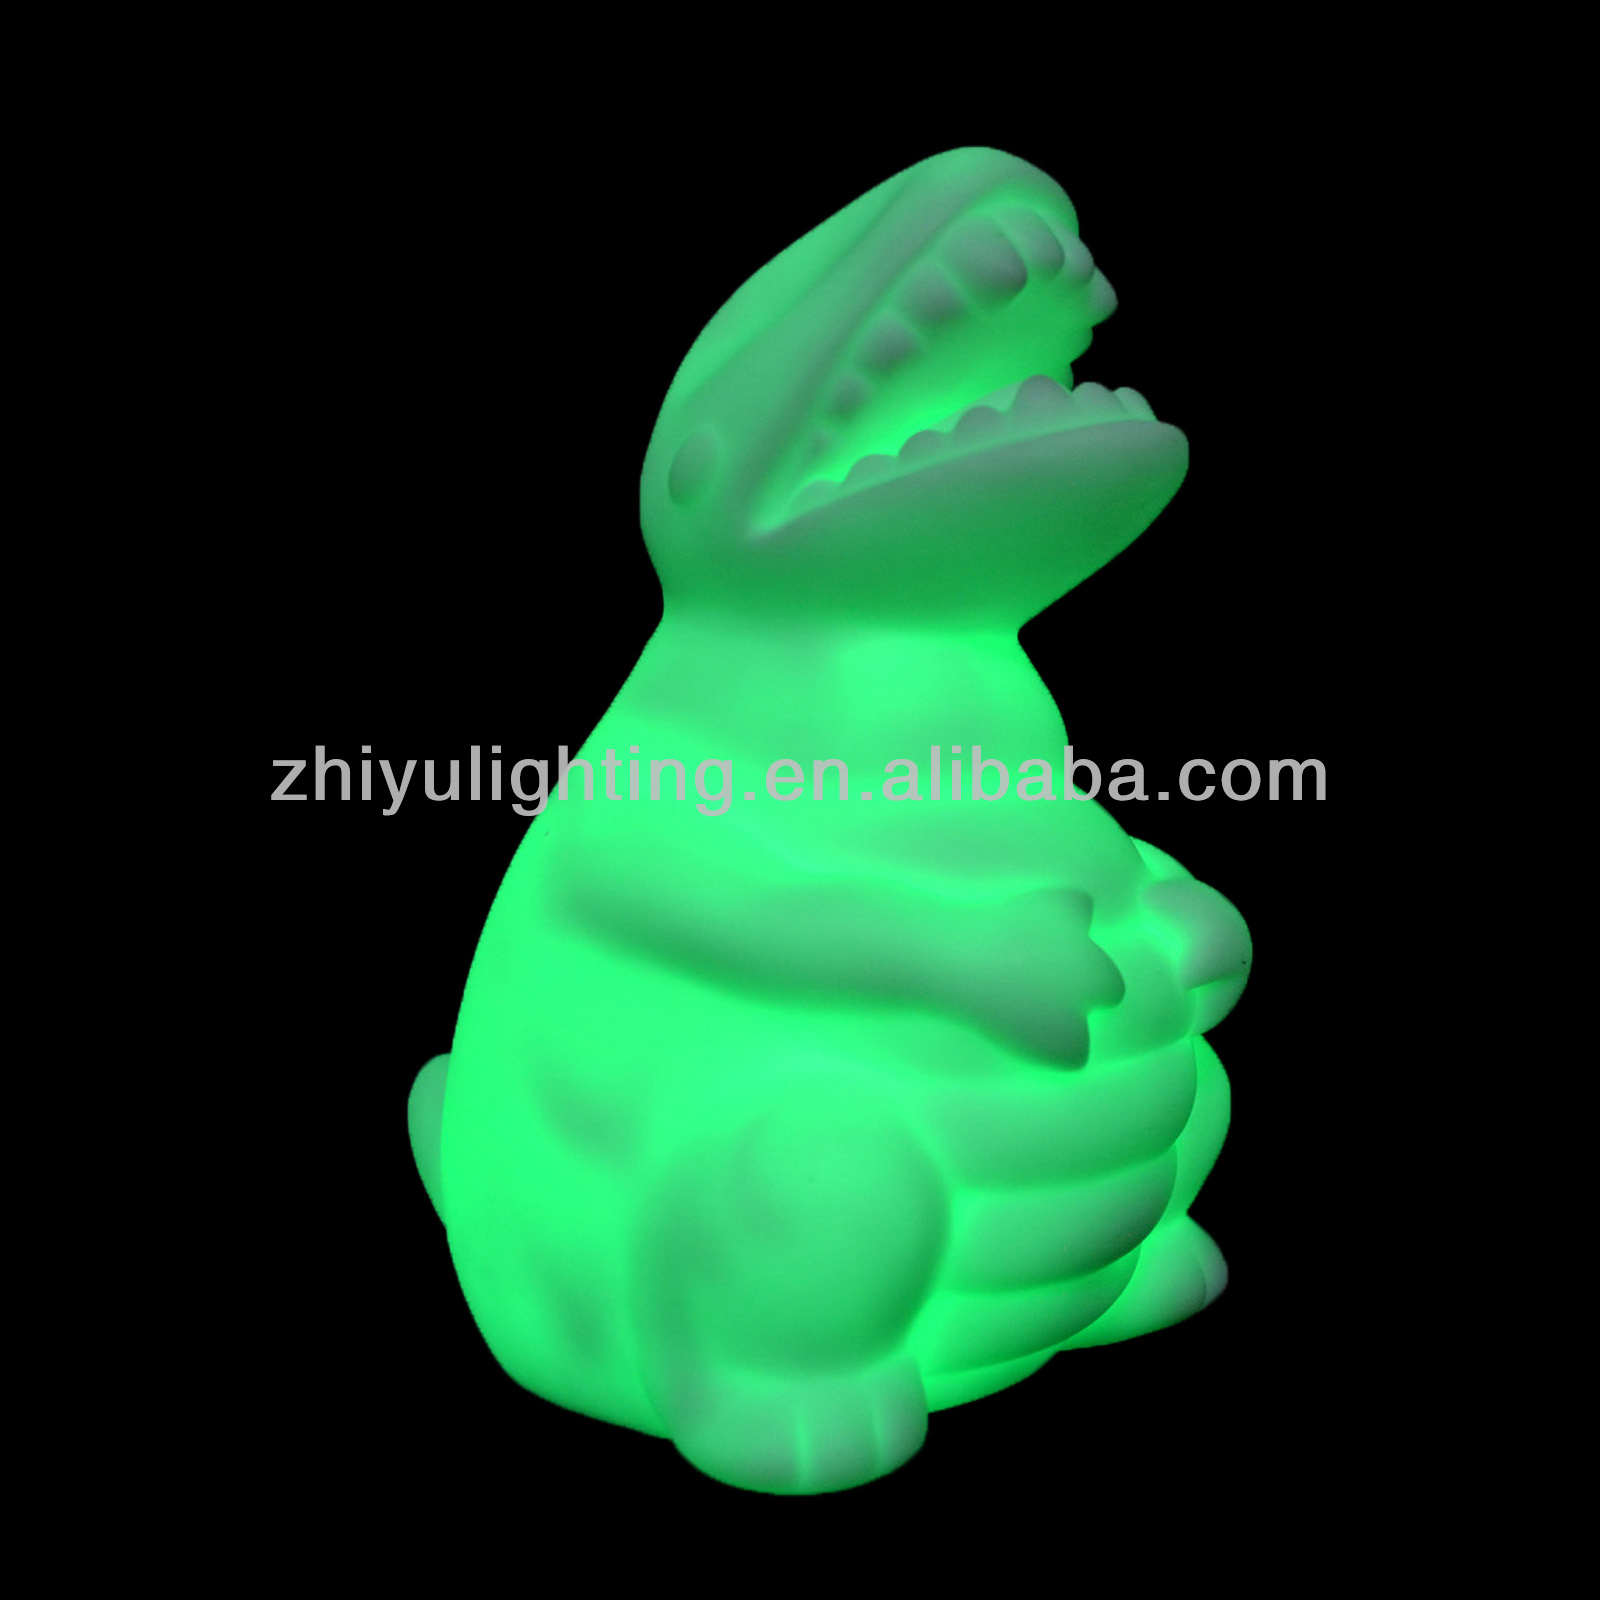 Battery operated mini led night light for dianosaurs led lamp